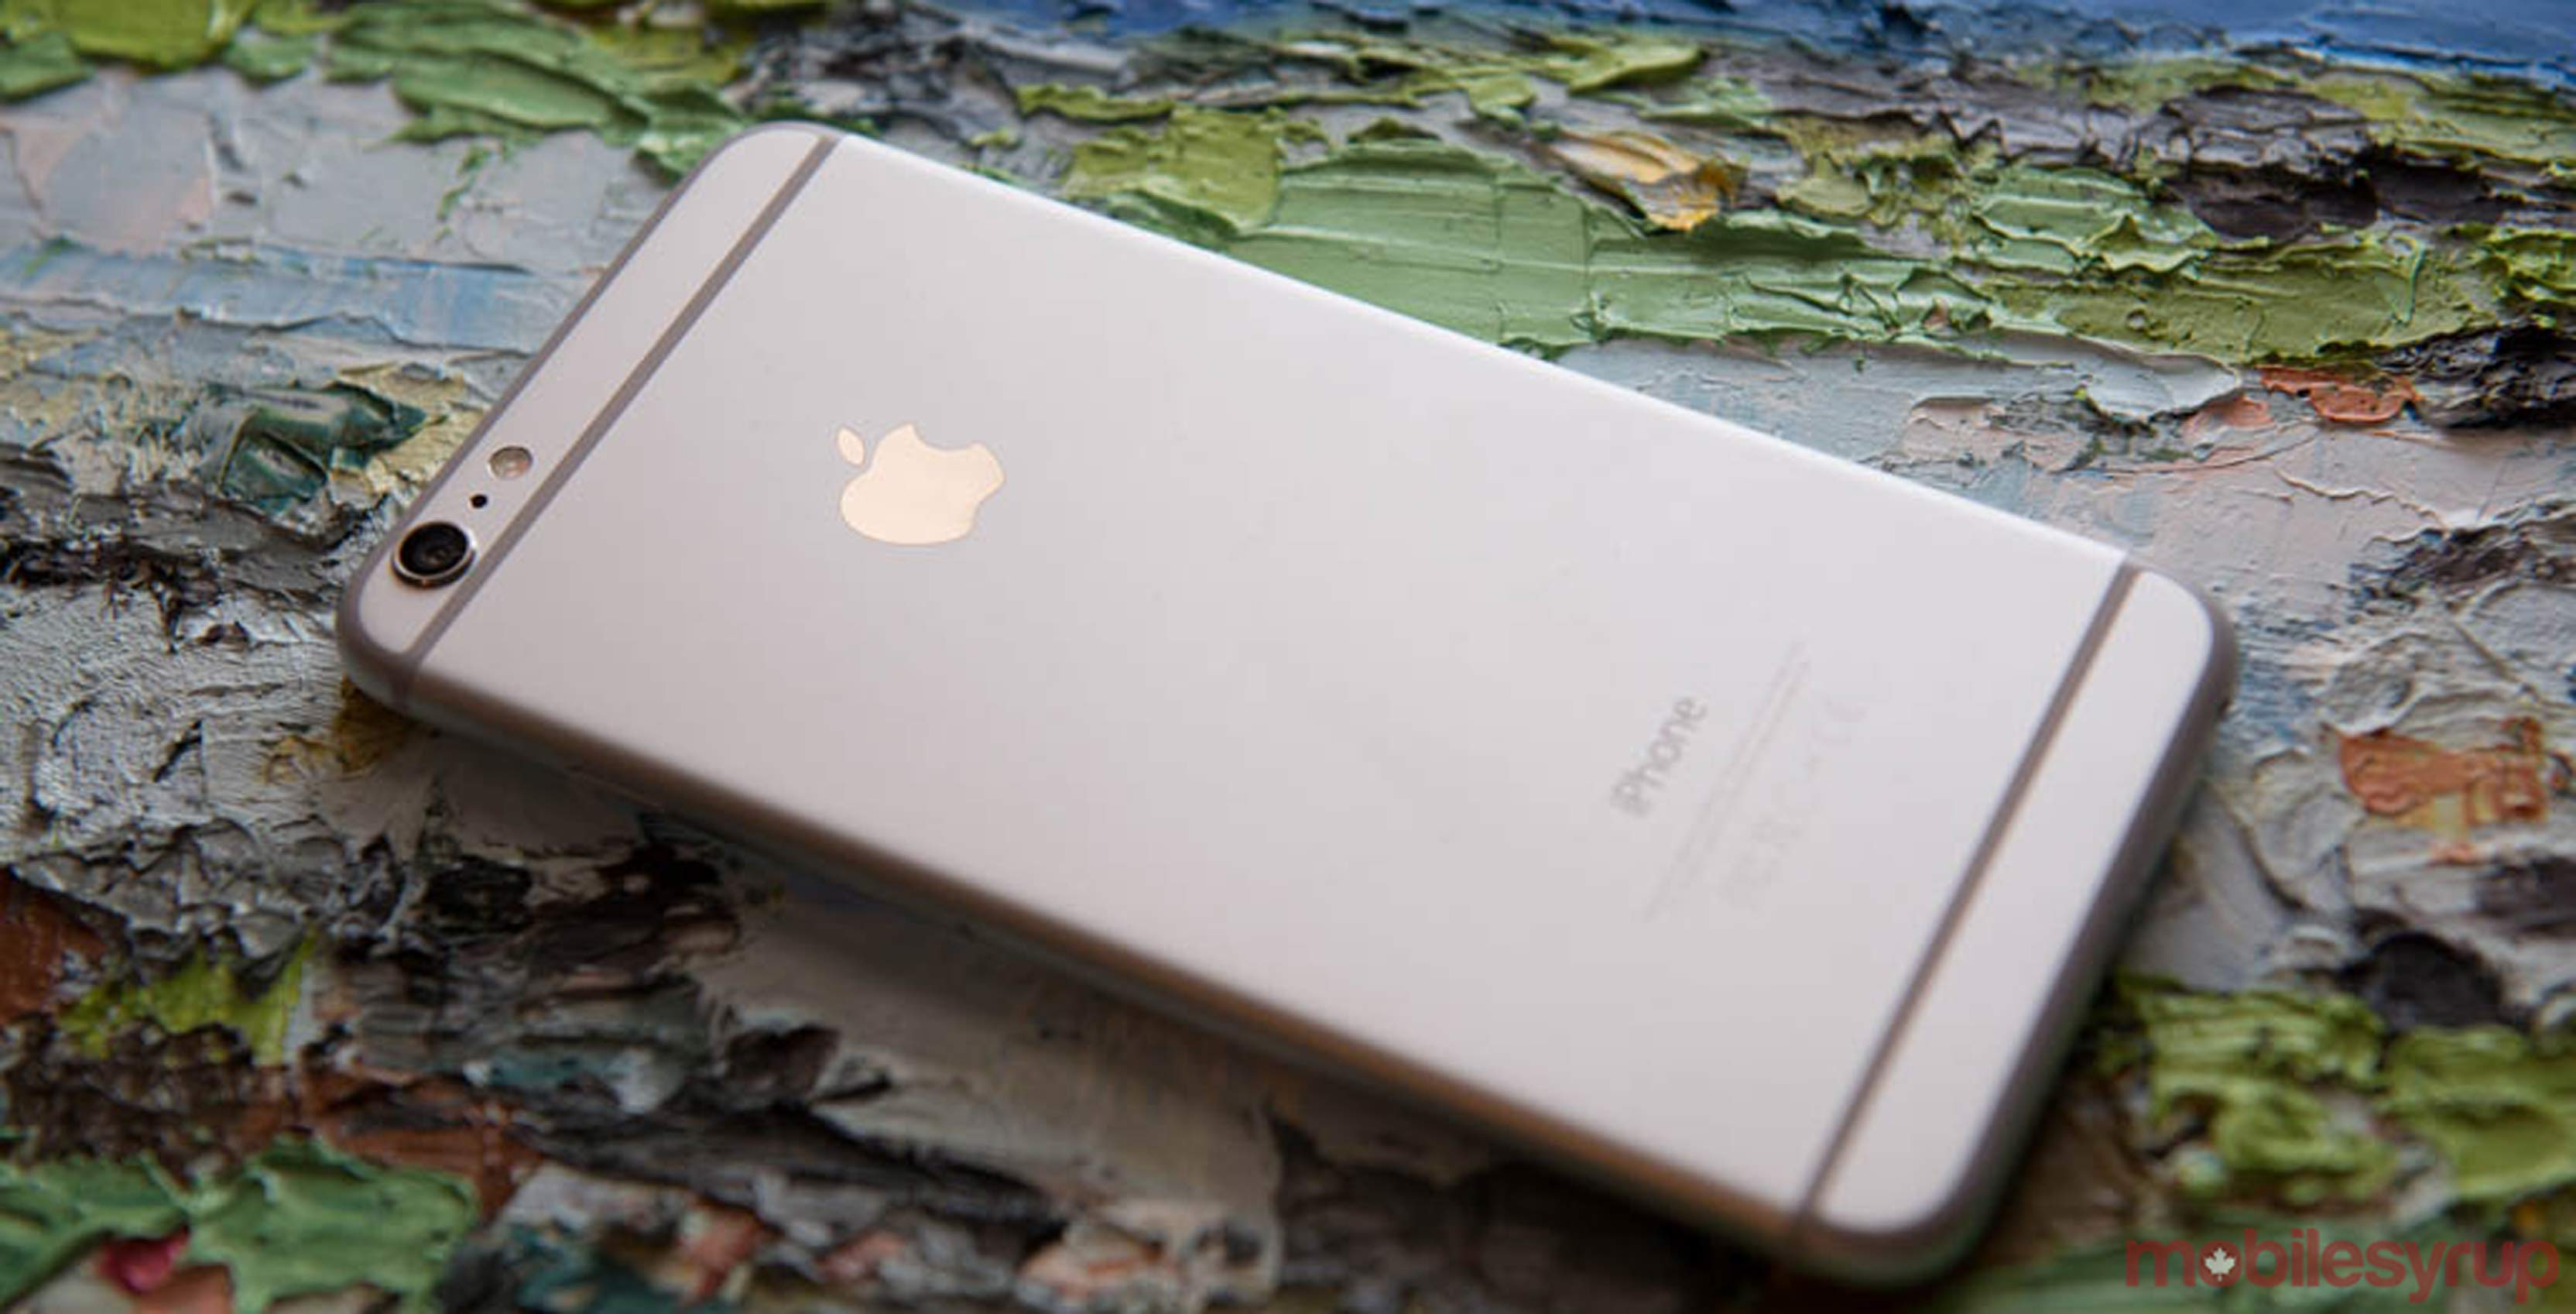 Iphone 6 32gb 32gb Iphone 6 Now Available In Canada Via Bell Virgin Mobile And